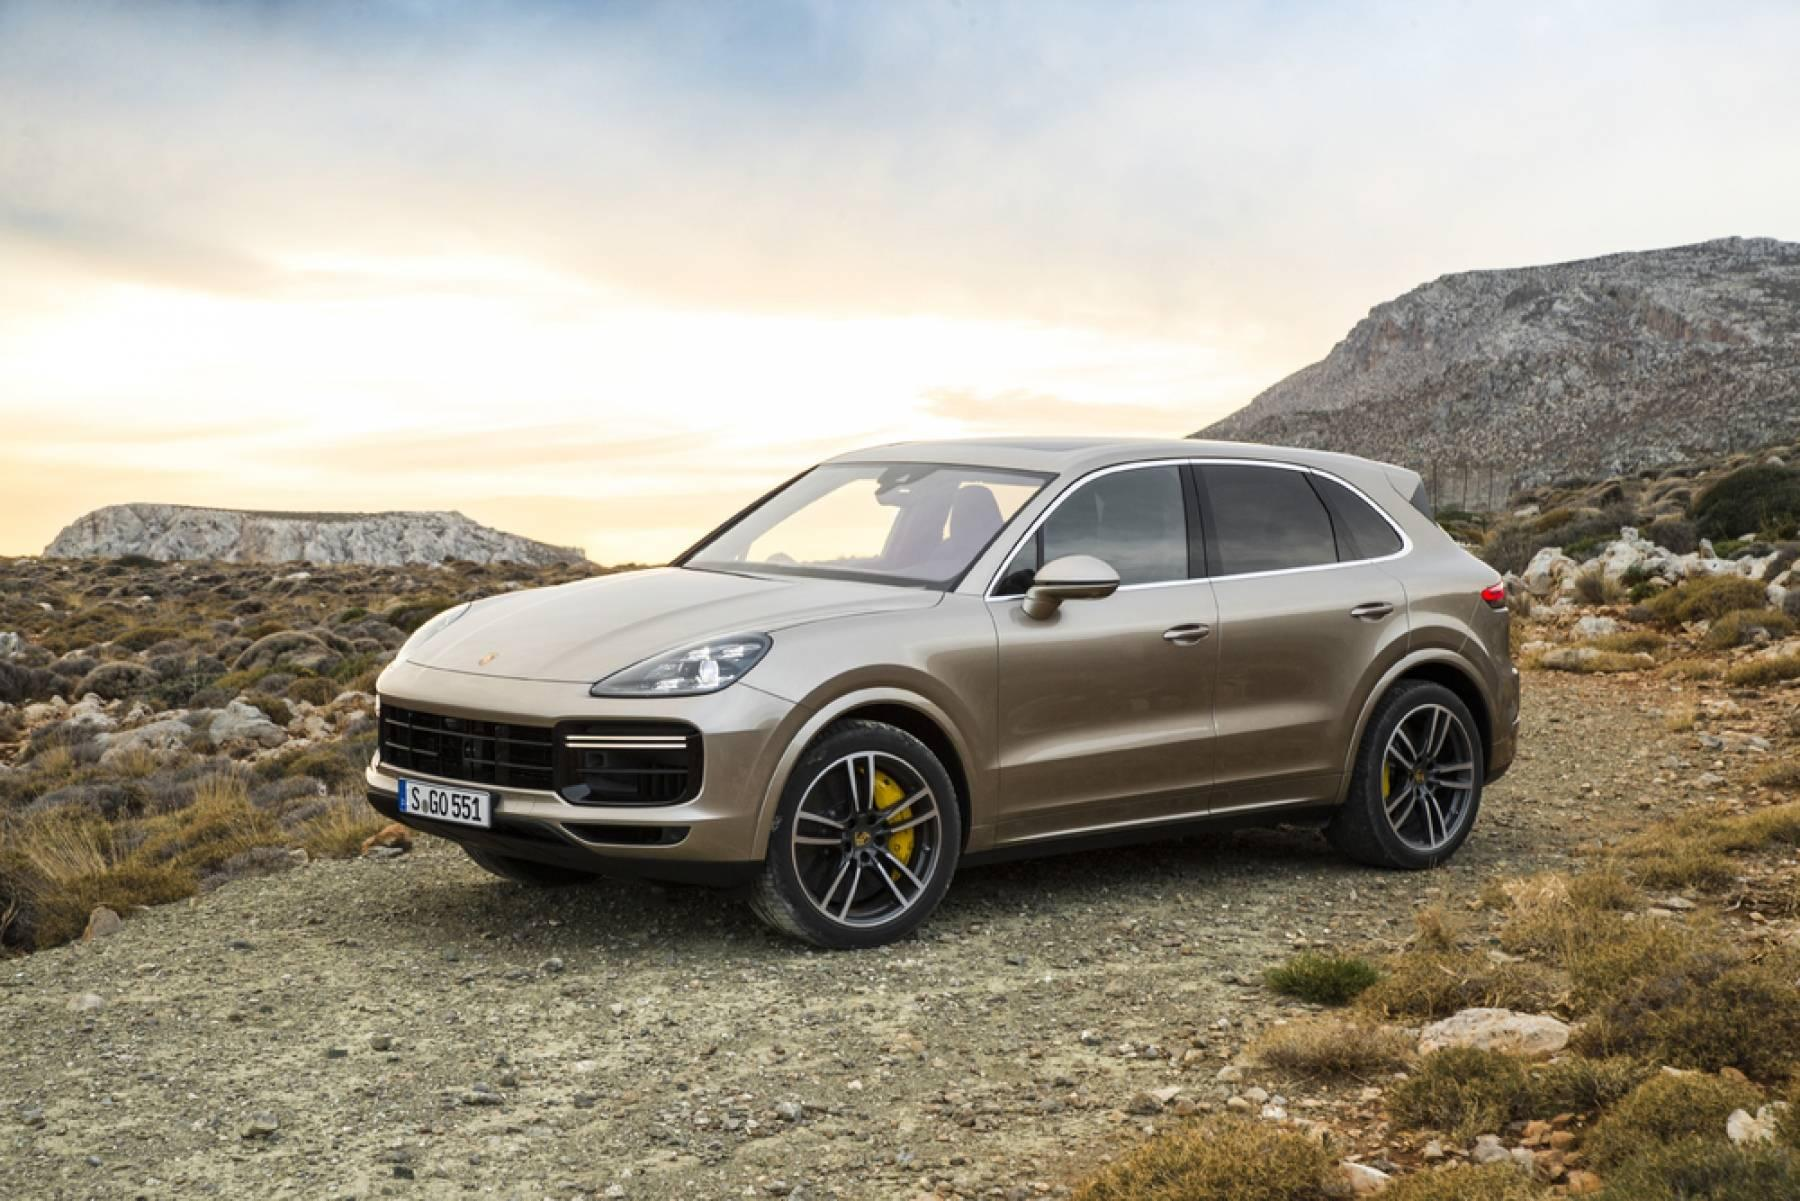 Porsche Cayenne Turbo Mk Iii Laptimes Specs Performance